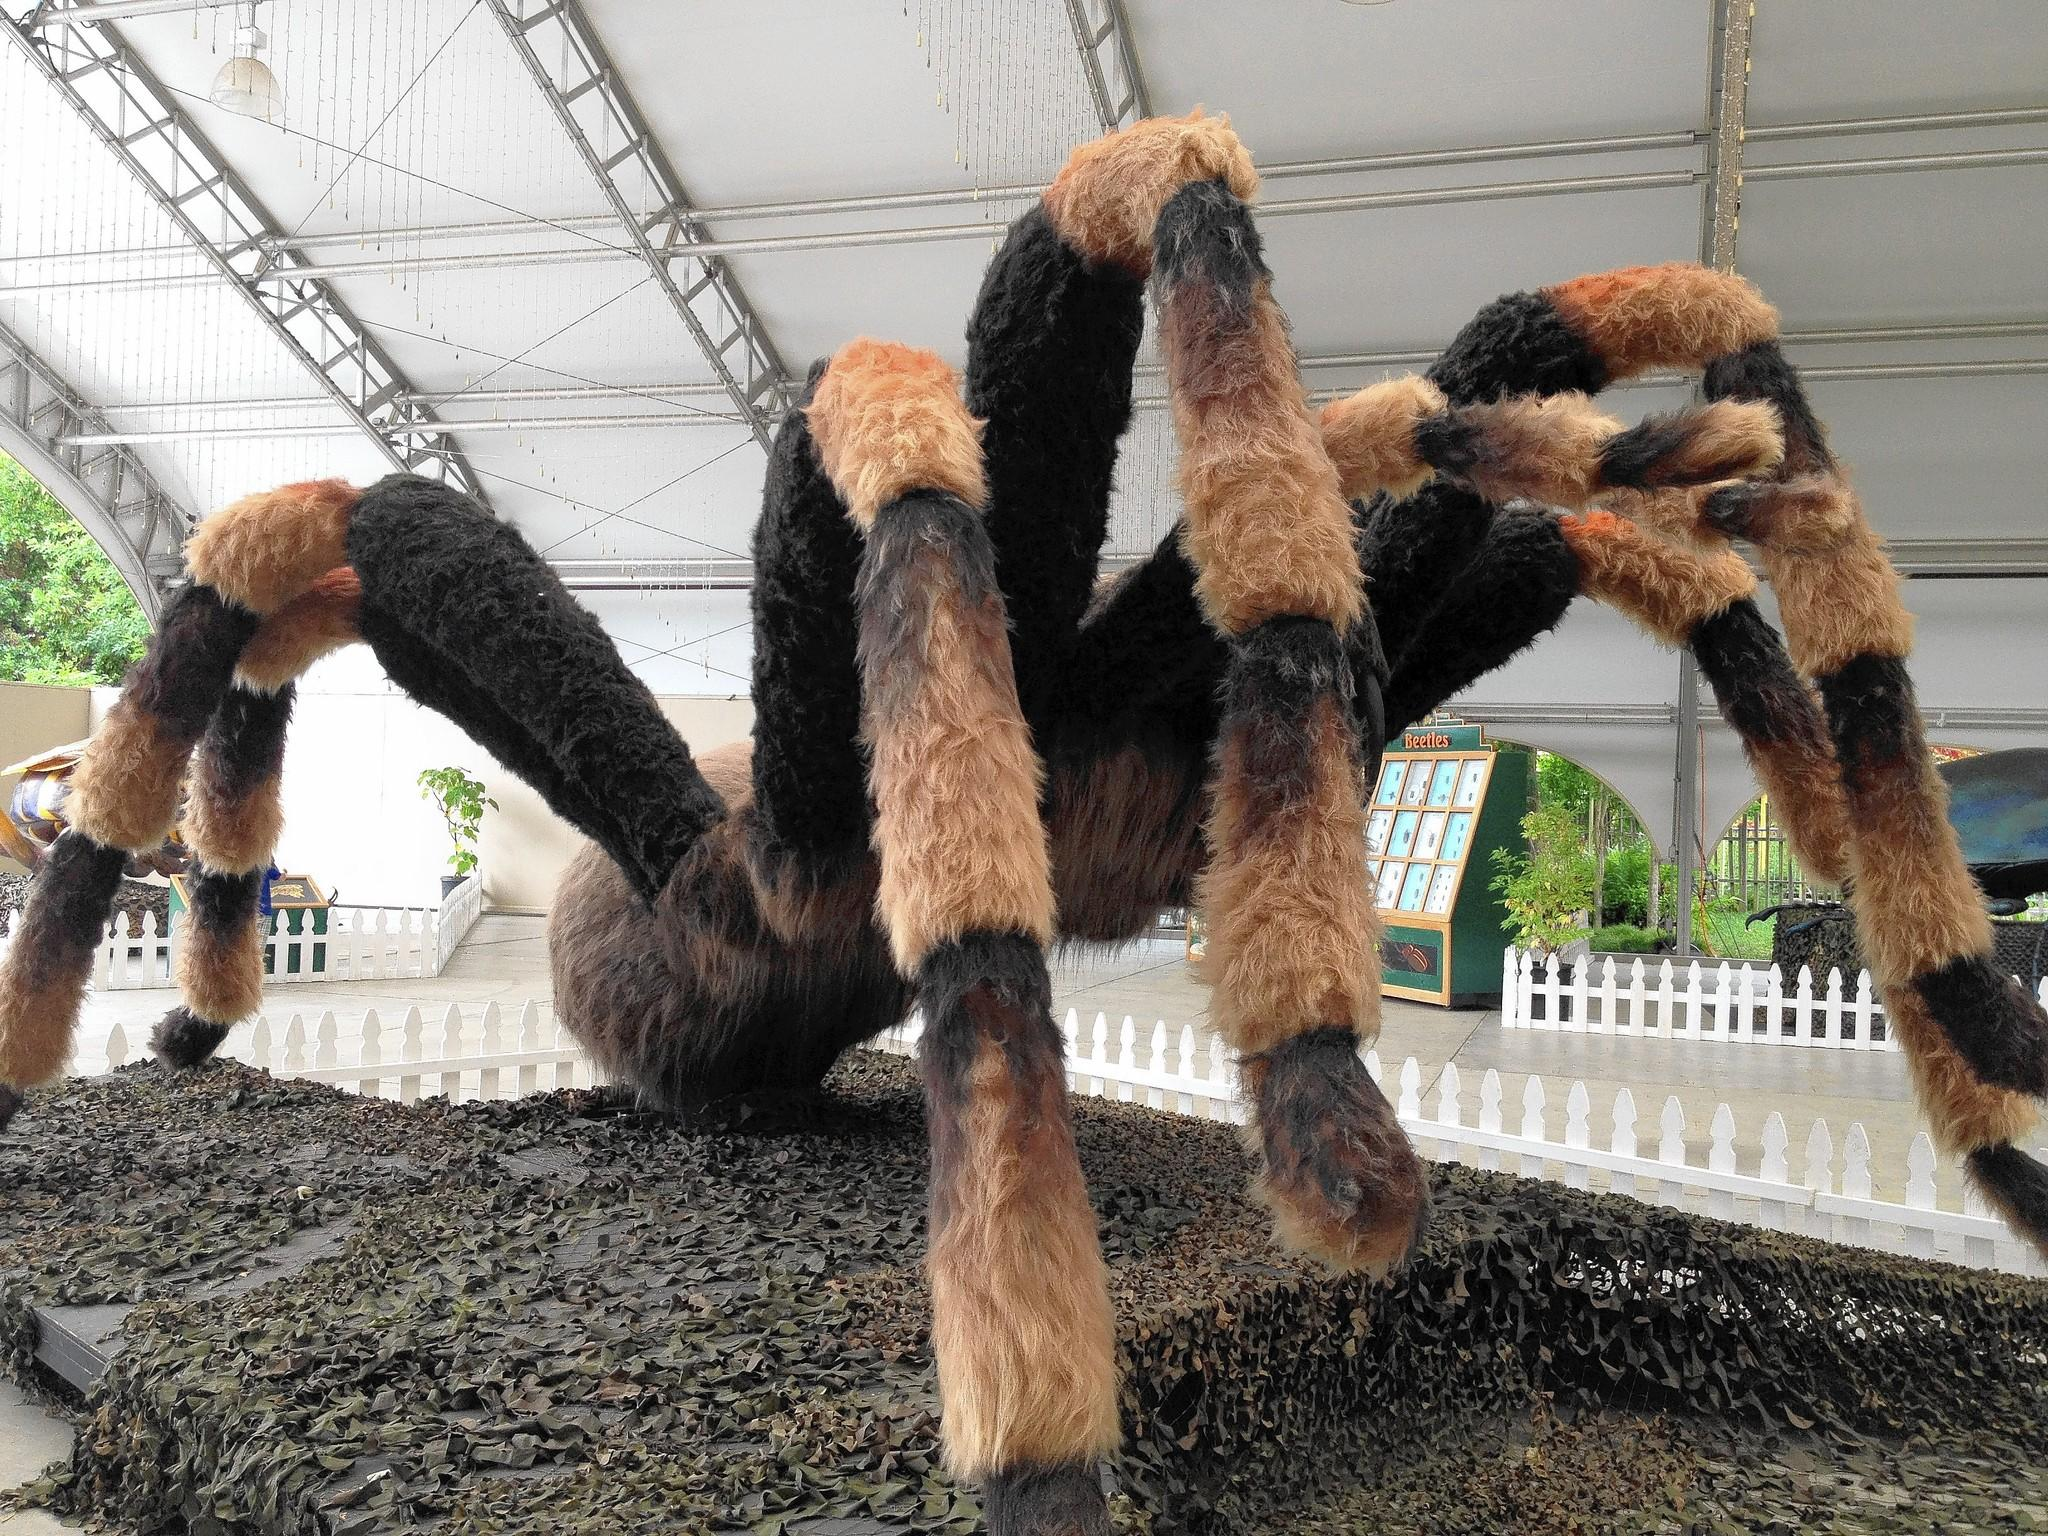 An 11-foot-tall tarantula is part of the interactive bug exhibit at the Mashantucket Pequot Museum & Research Center through May 17.